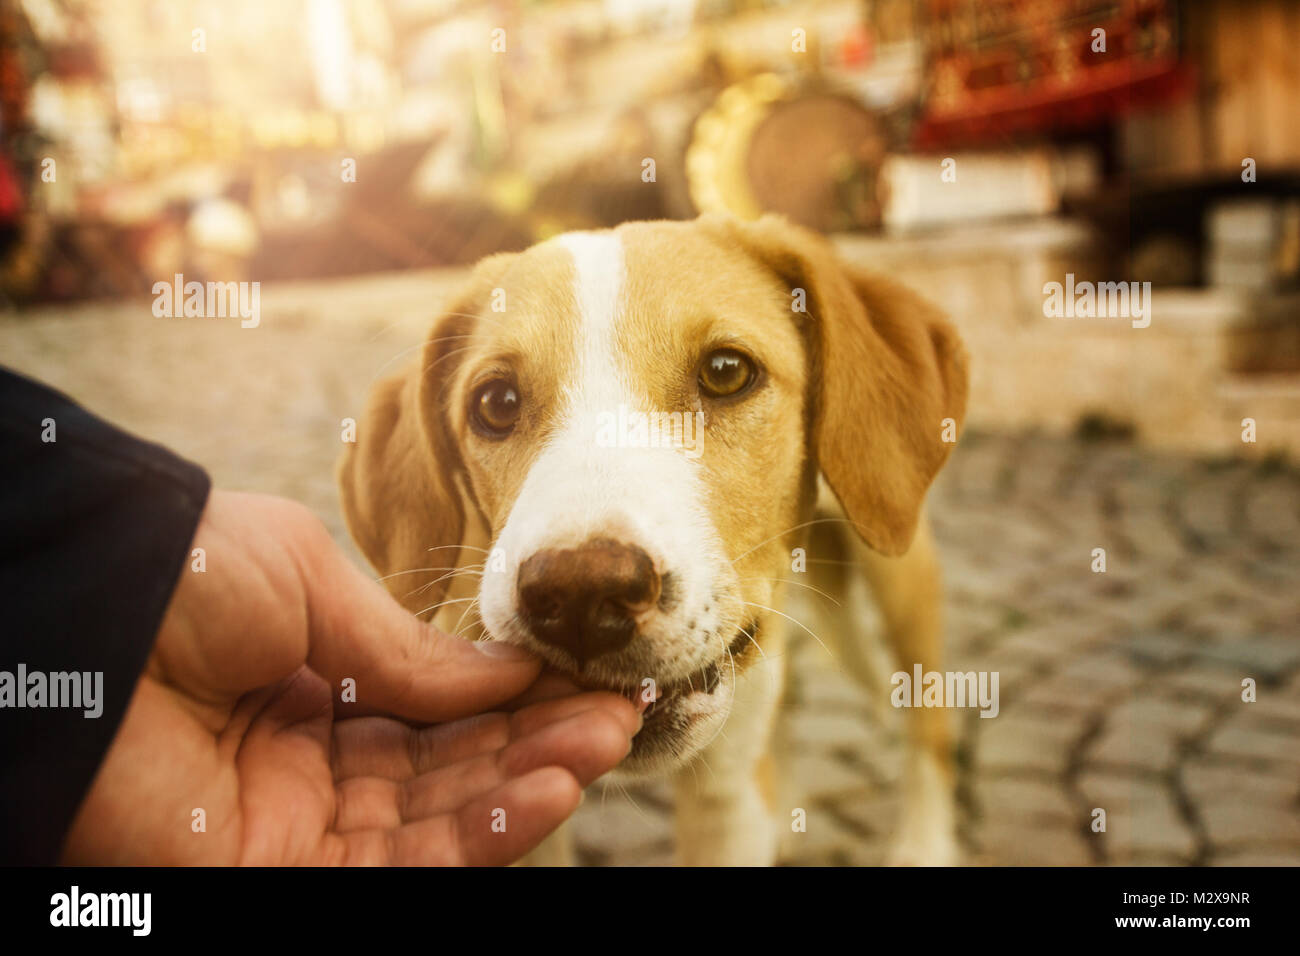 hand feed the dog in the evening sunlight - Stock Image